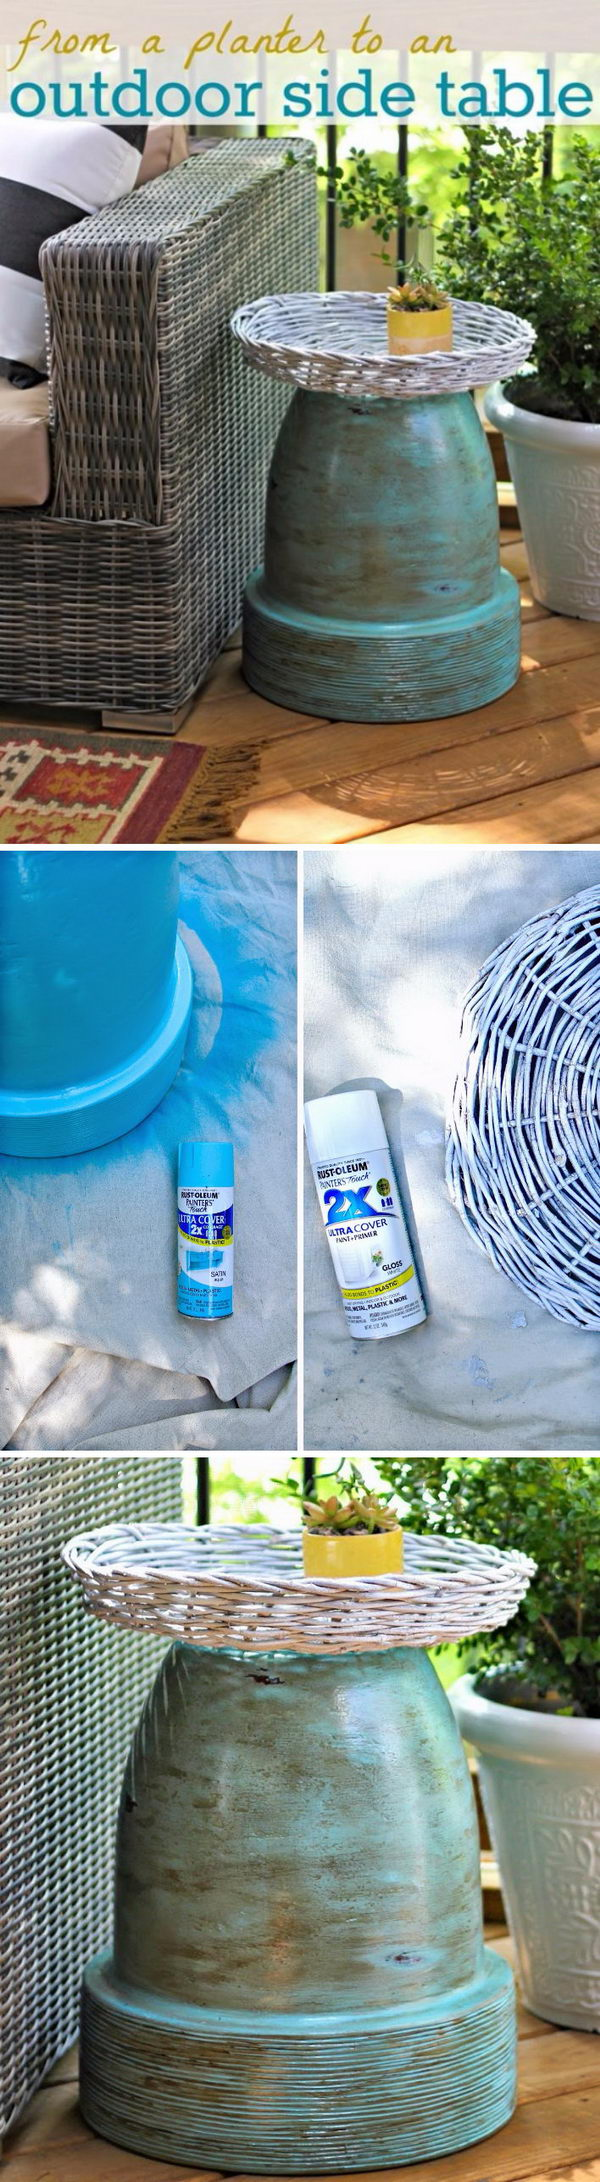 awesome diy side table ideas for outdoors and indoors hative tutorials blue outdoor accent terracotta pot charging station iron gallerie beds battery lamps red clearance bedding